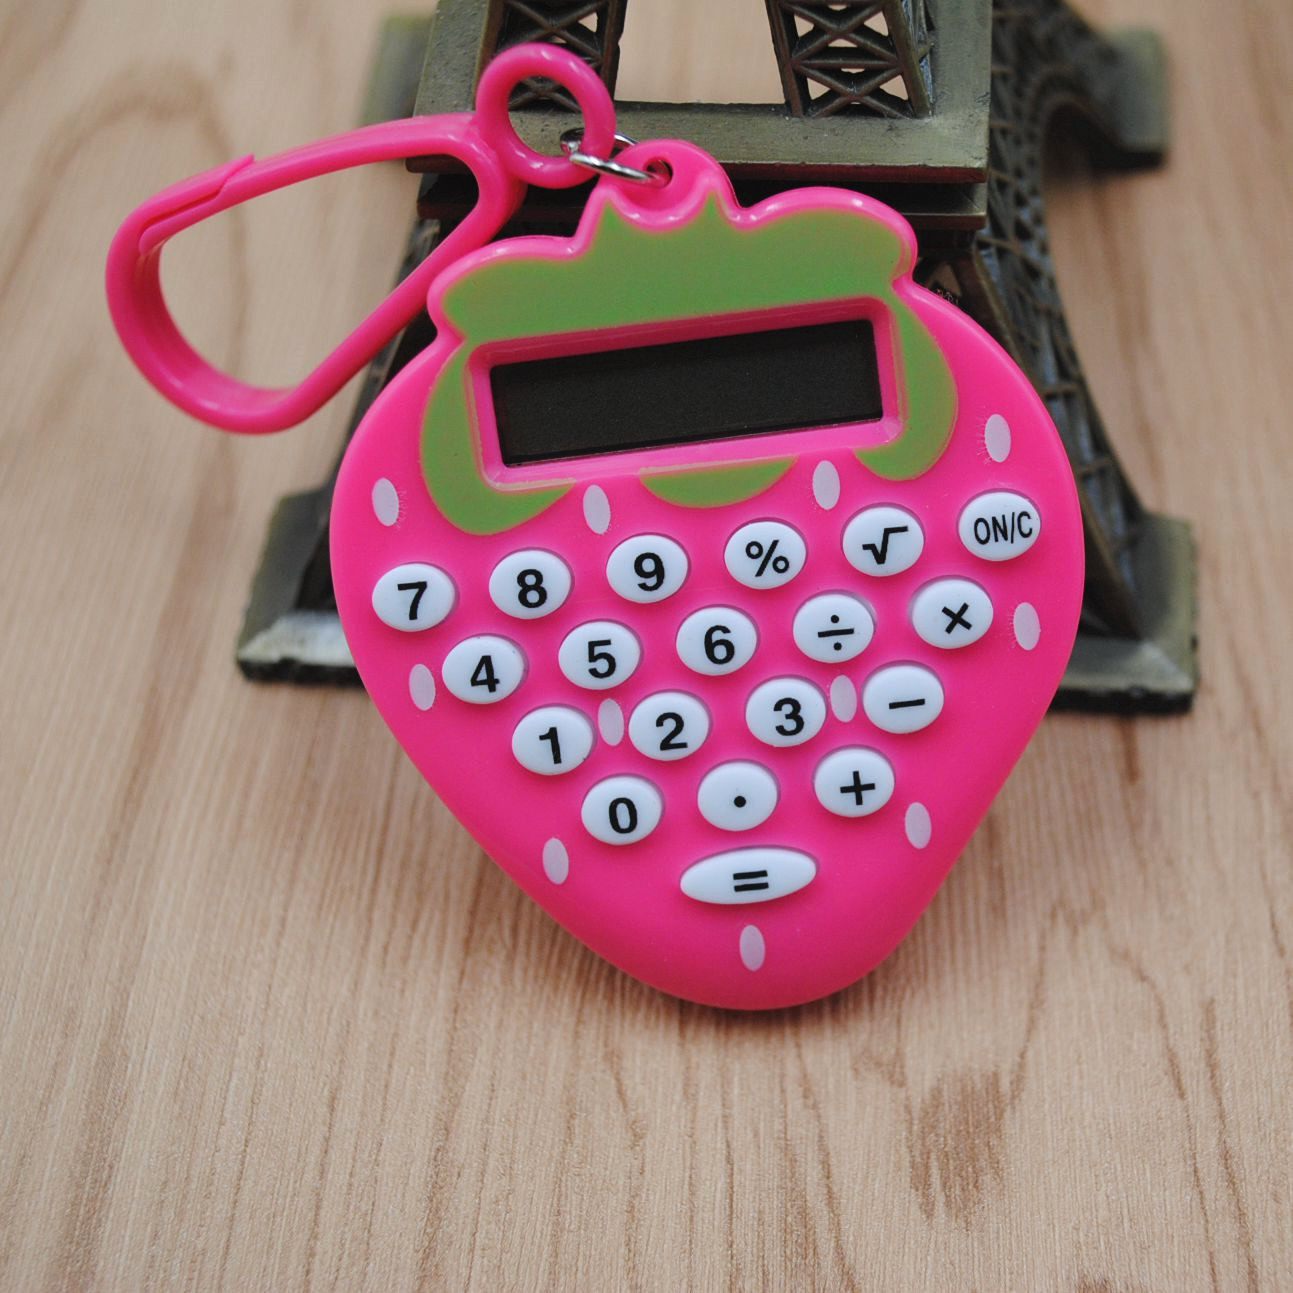 1pc Calculator Practical Cat Shaped Mini Portable Electronic Calculator for Home